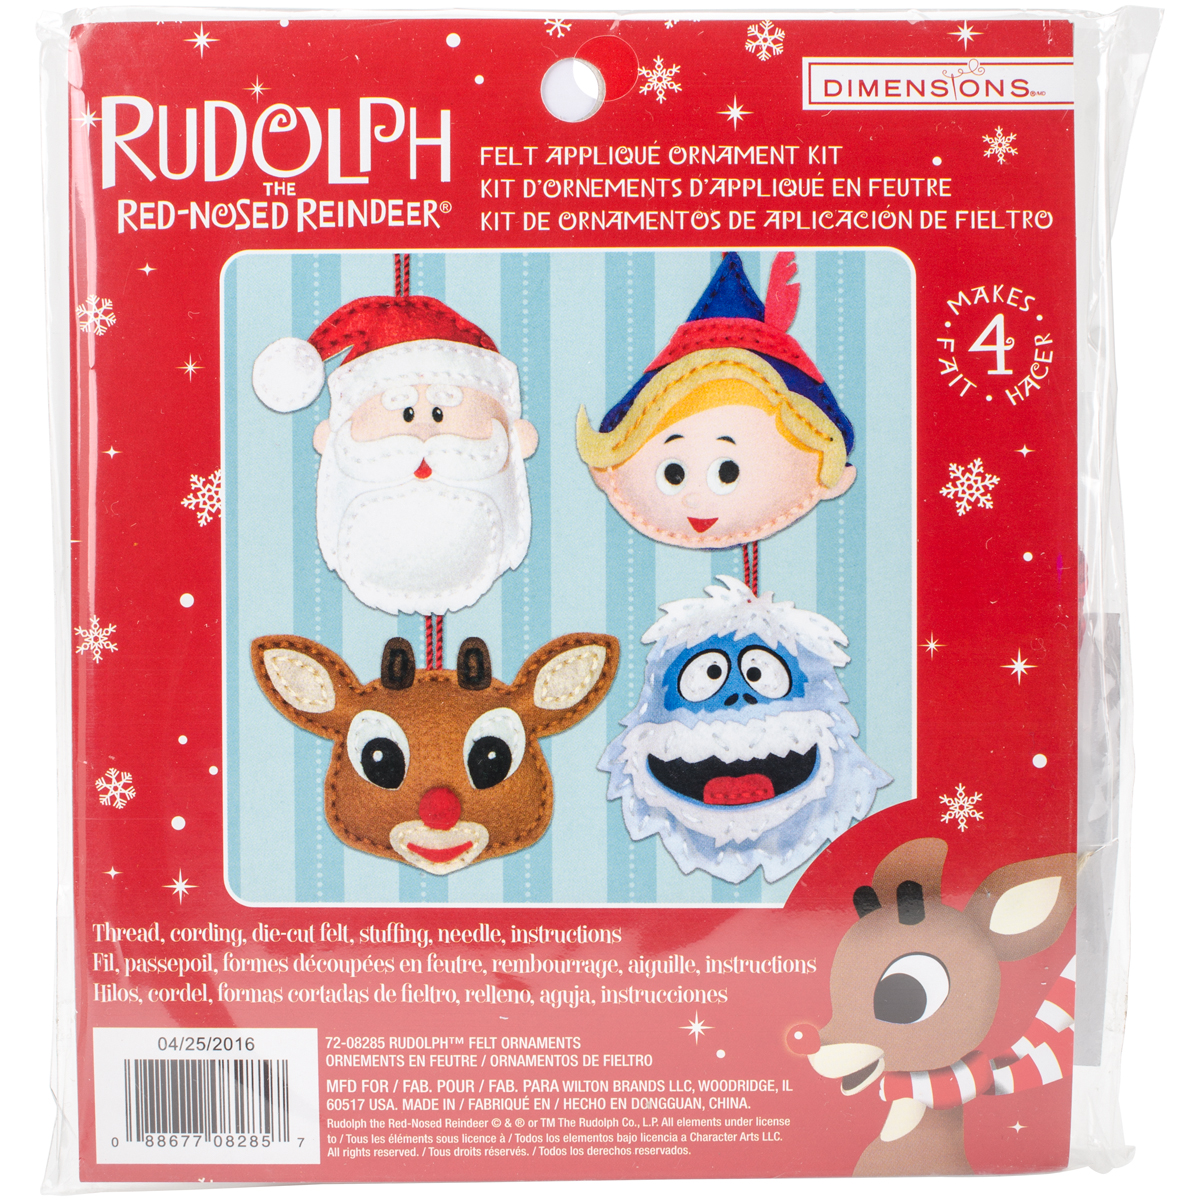 Dimensions Felt Ornaments Applique Kit Set Of 4-Rudolph The Red Nose Reindeer